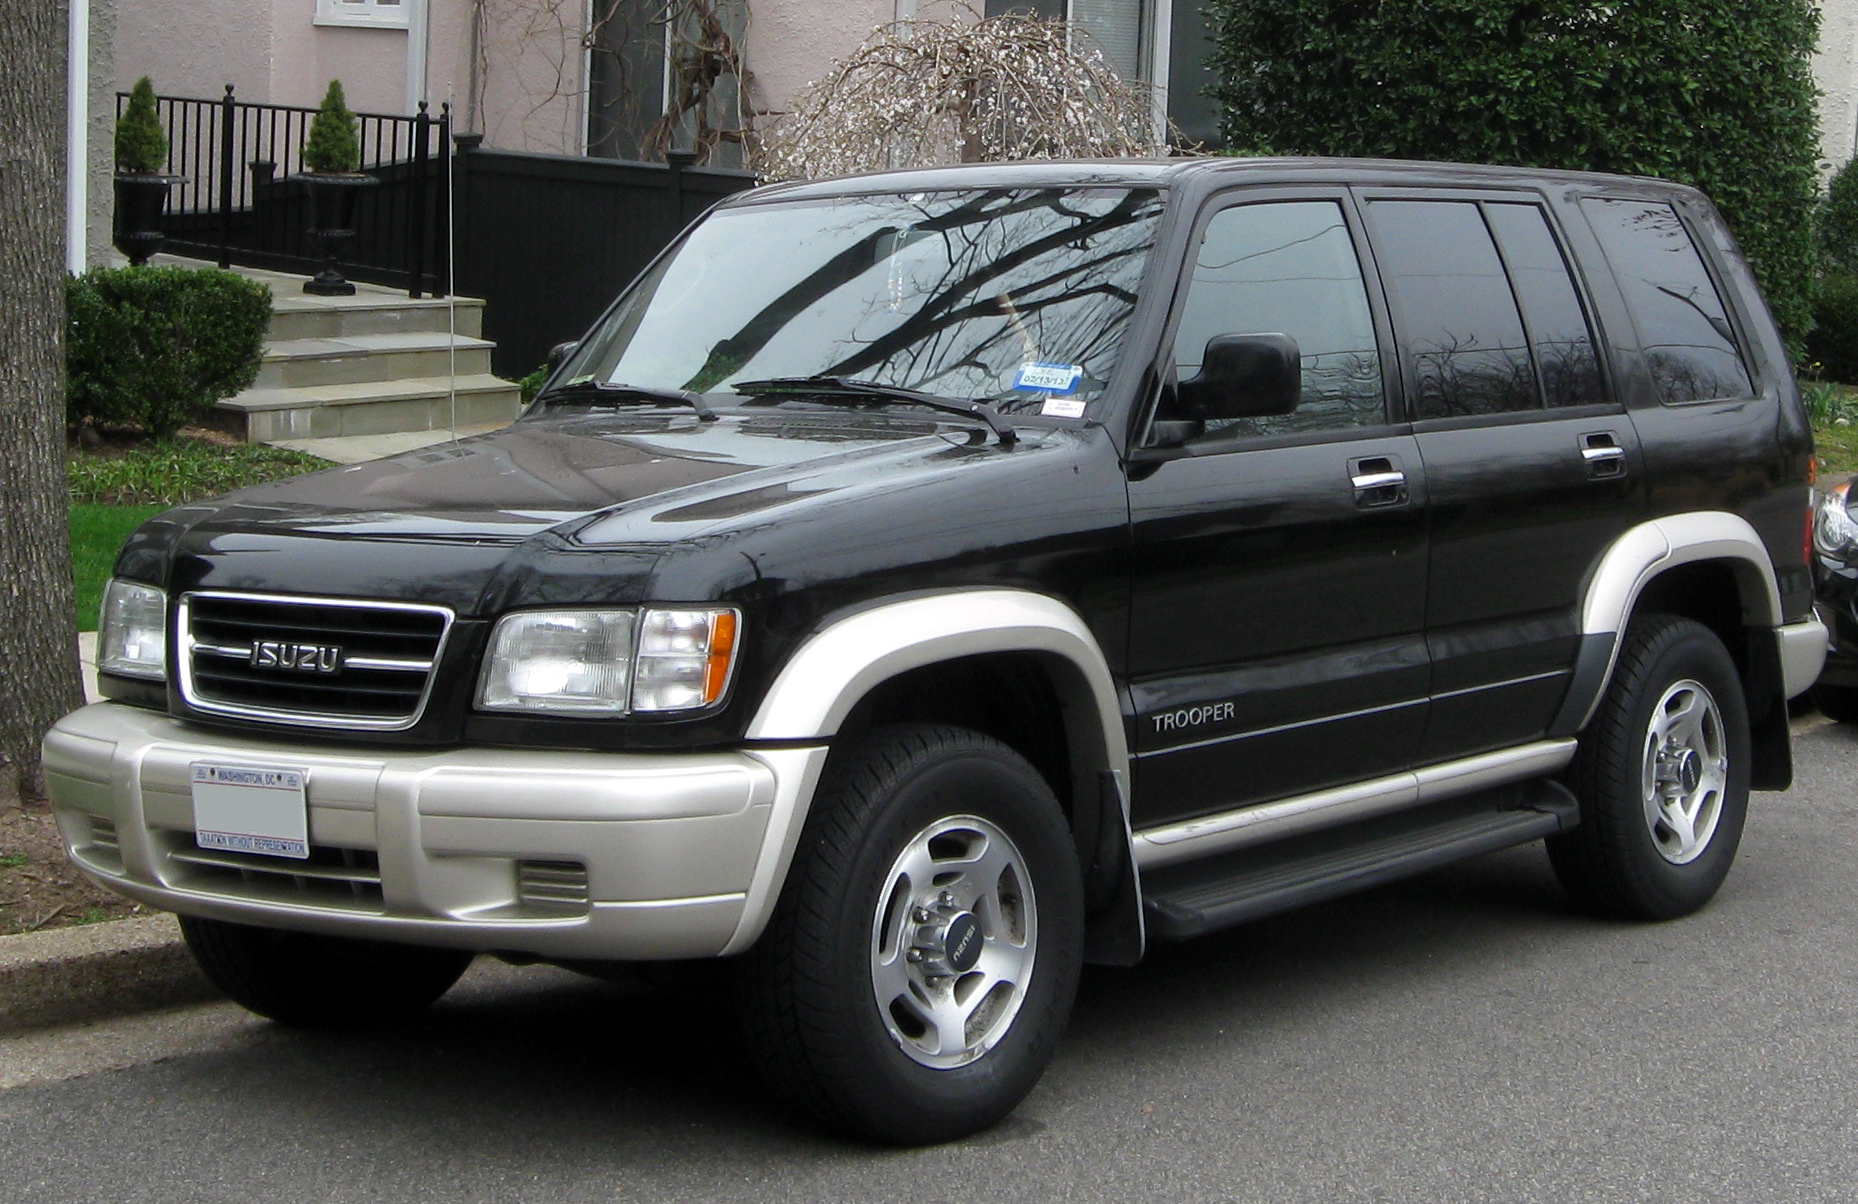 Isuzu Trooper #12